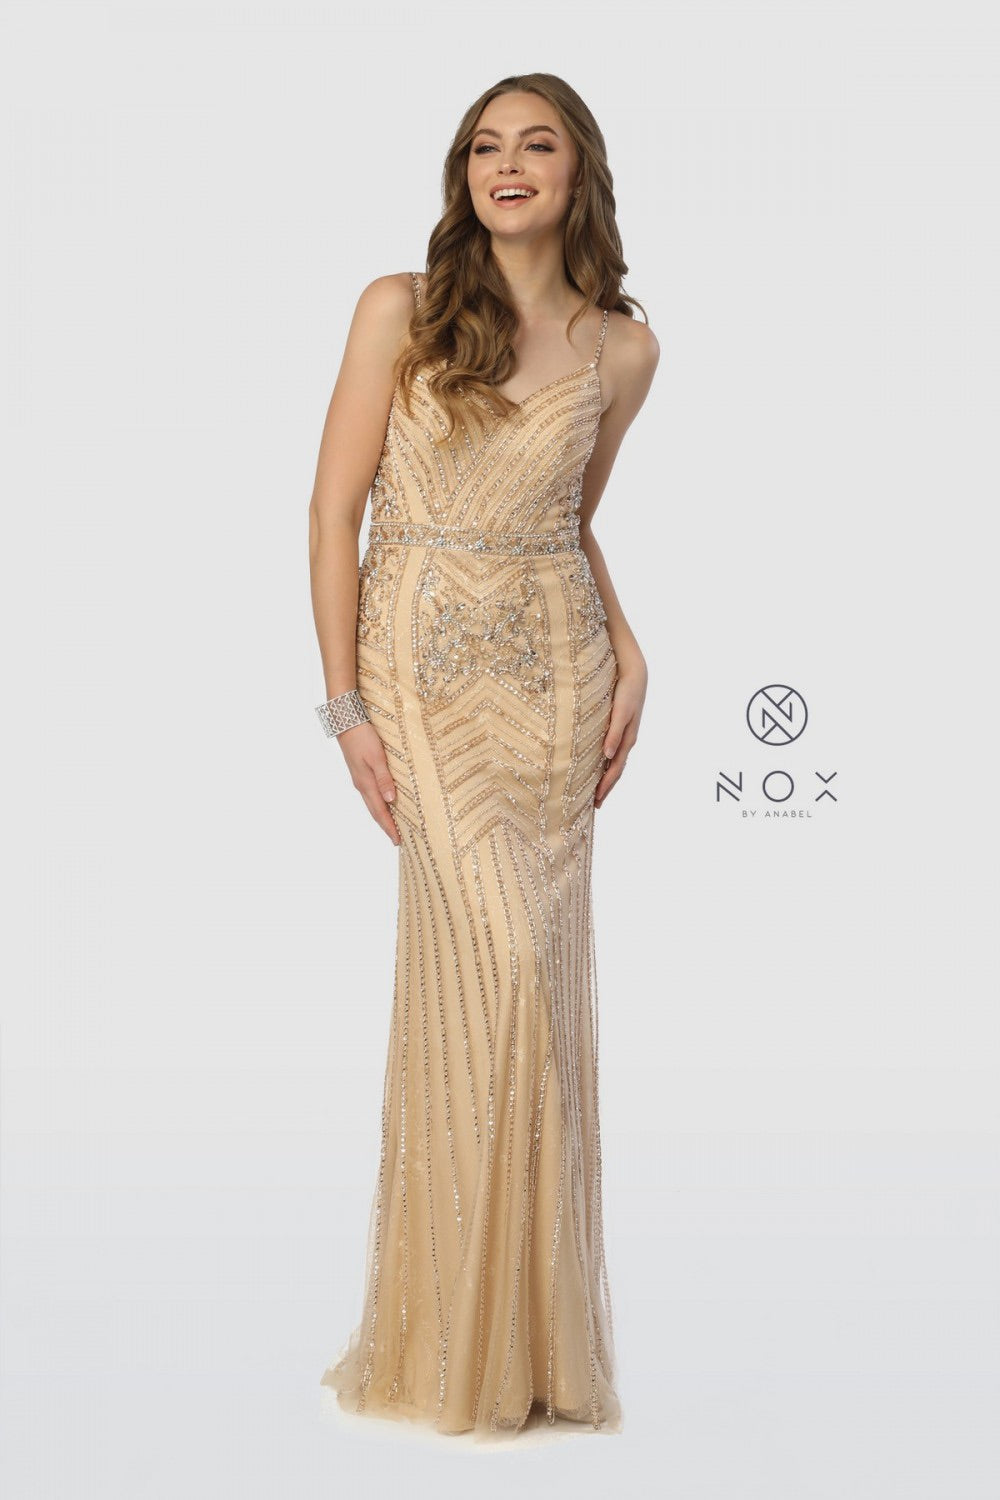 Nox Anabel T254 Beaded Evening Dress